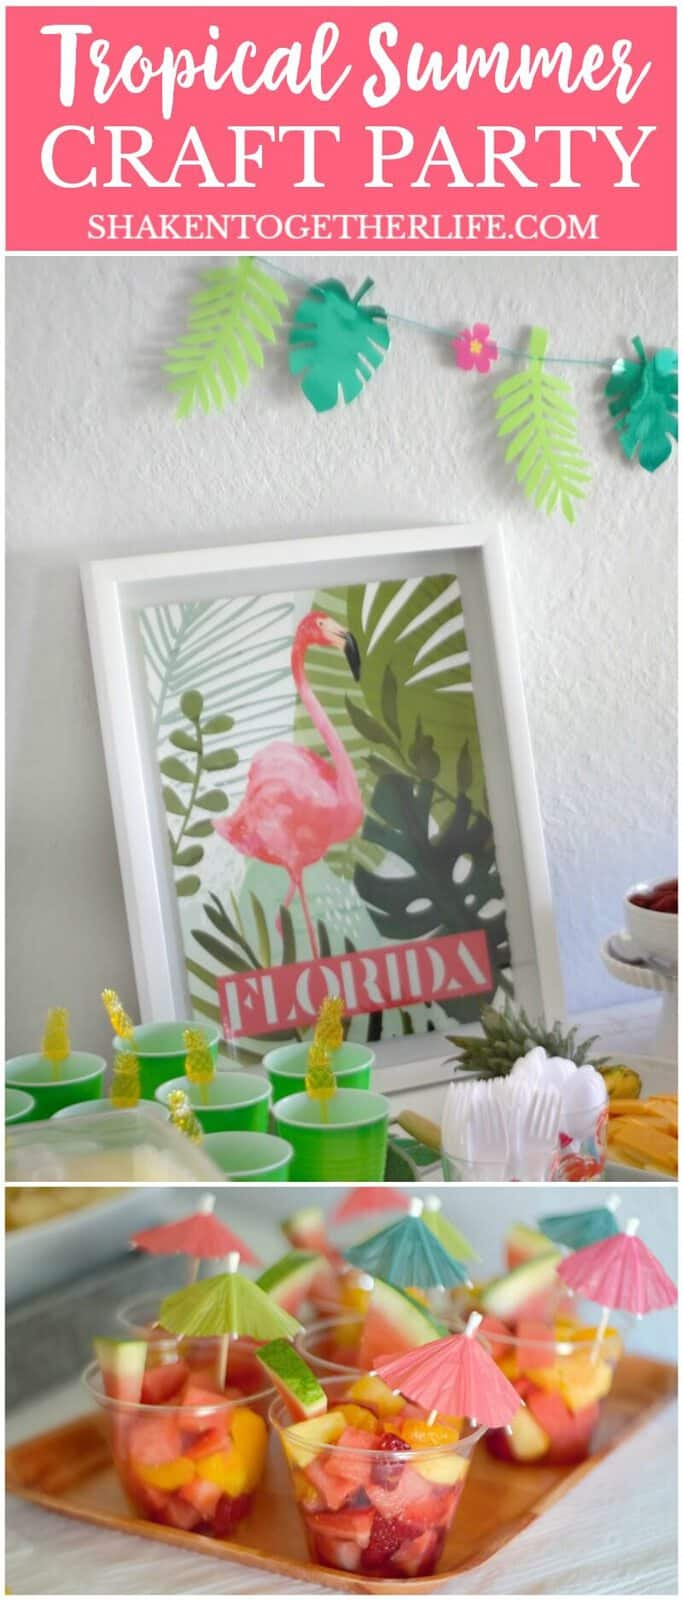 Grab your gal pals and throw a bright and festive Tropical Summer Craft Party! A pineapple cheese tray, tropical fruit salad and corn & avocado salsa round out the food and there are 4 EASY tropical craft ideas to make with the girls!